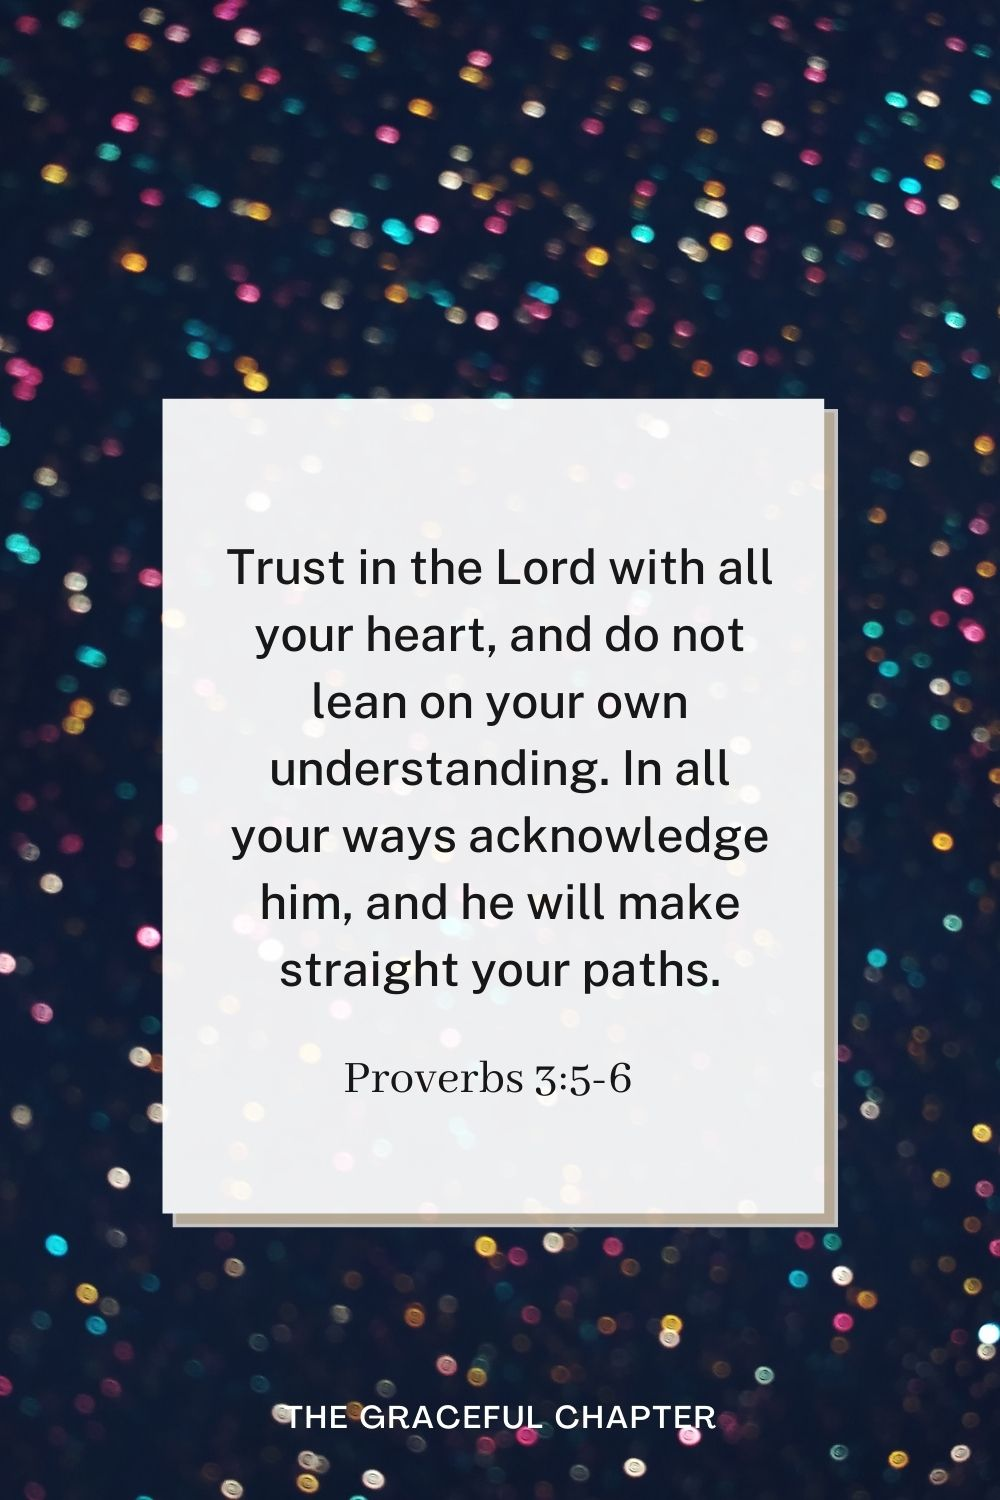 birthday bible verses - Trust in the Lord with all your heart, and do not lean on your own understanding. In all your ways acknowledge him, and he will make straight your paths. Proverbs 3:5-6